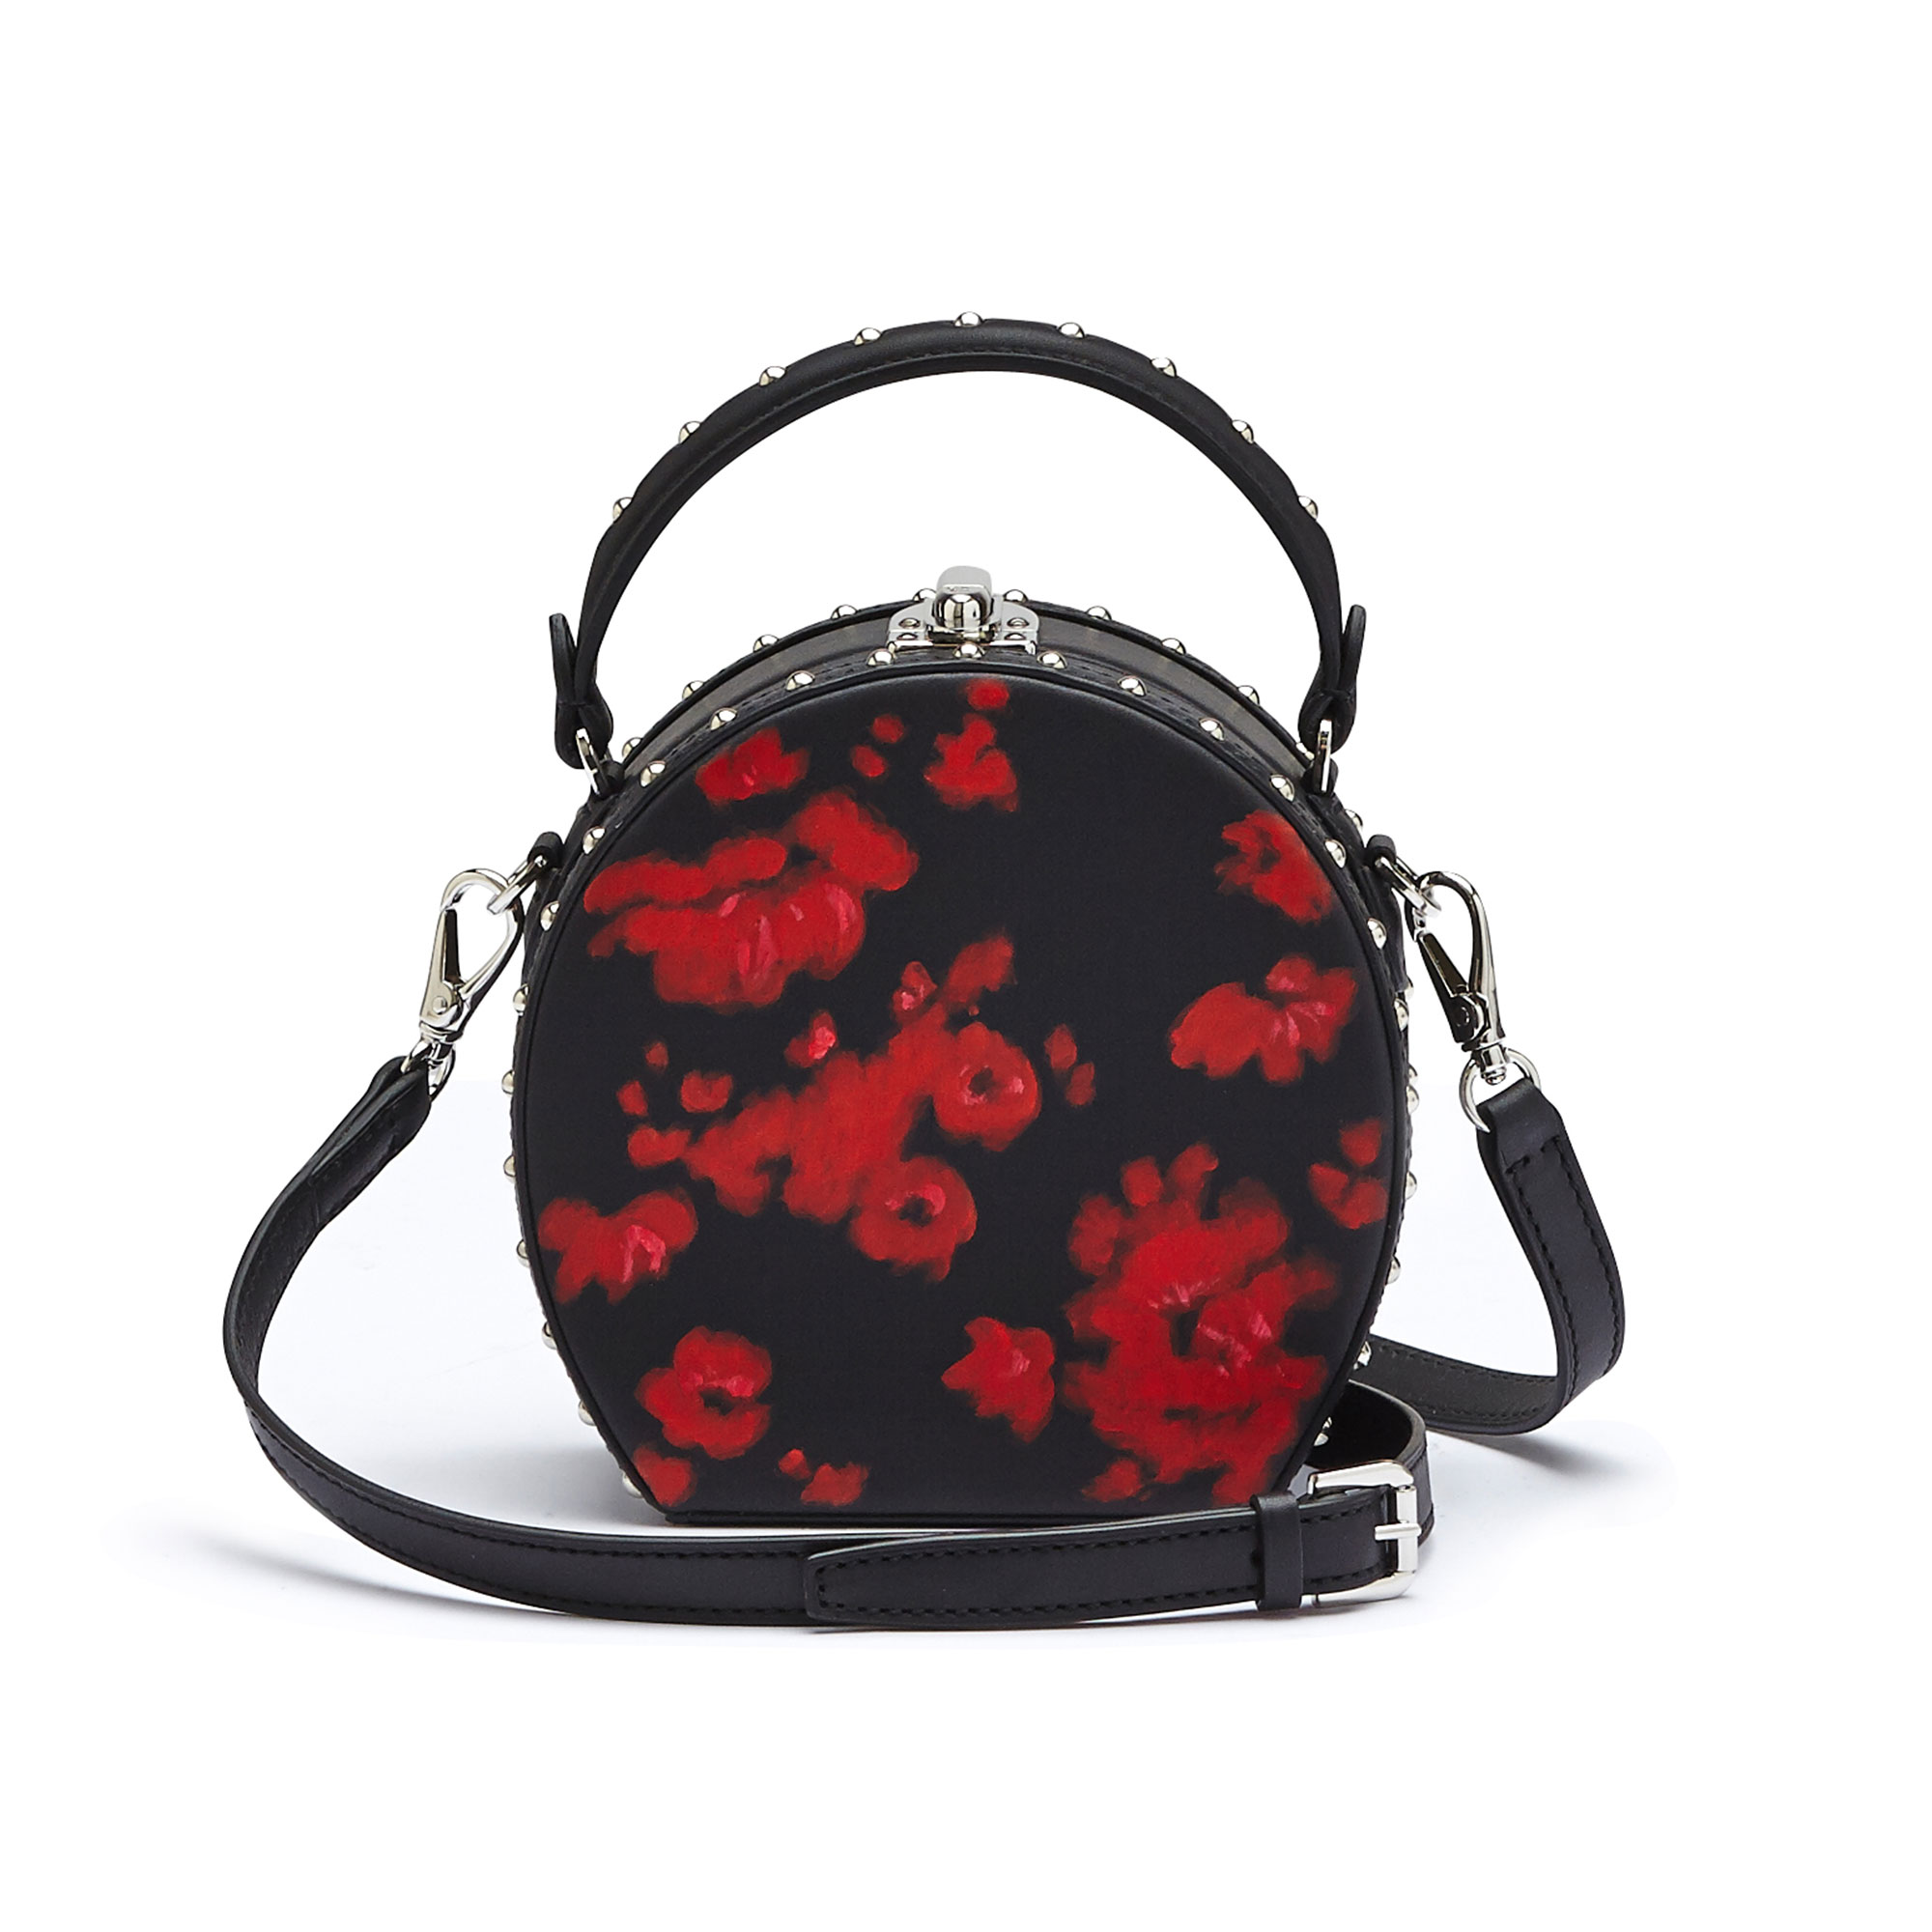 The black and red flowers french calf Mini Bertoncina with studded bag by Bertoni 1949 03